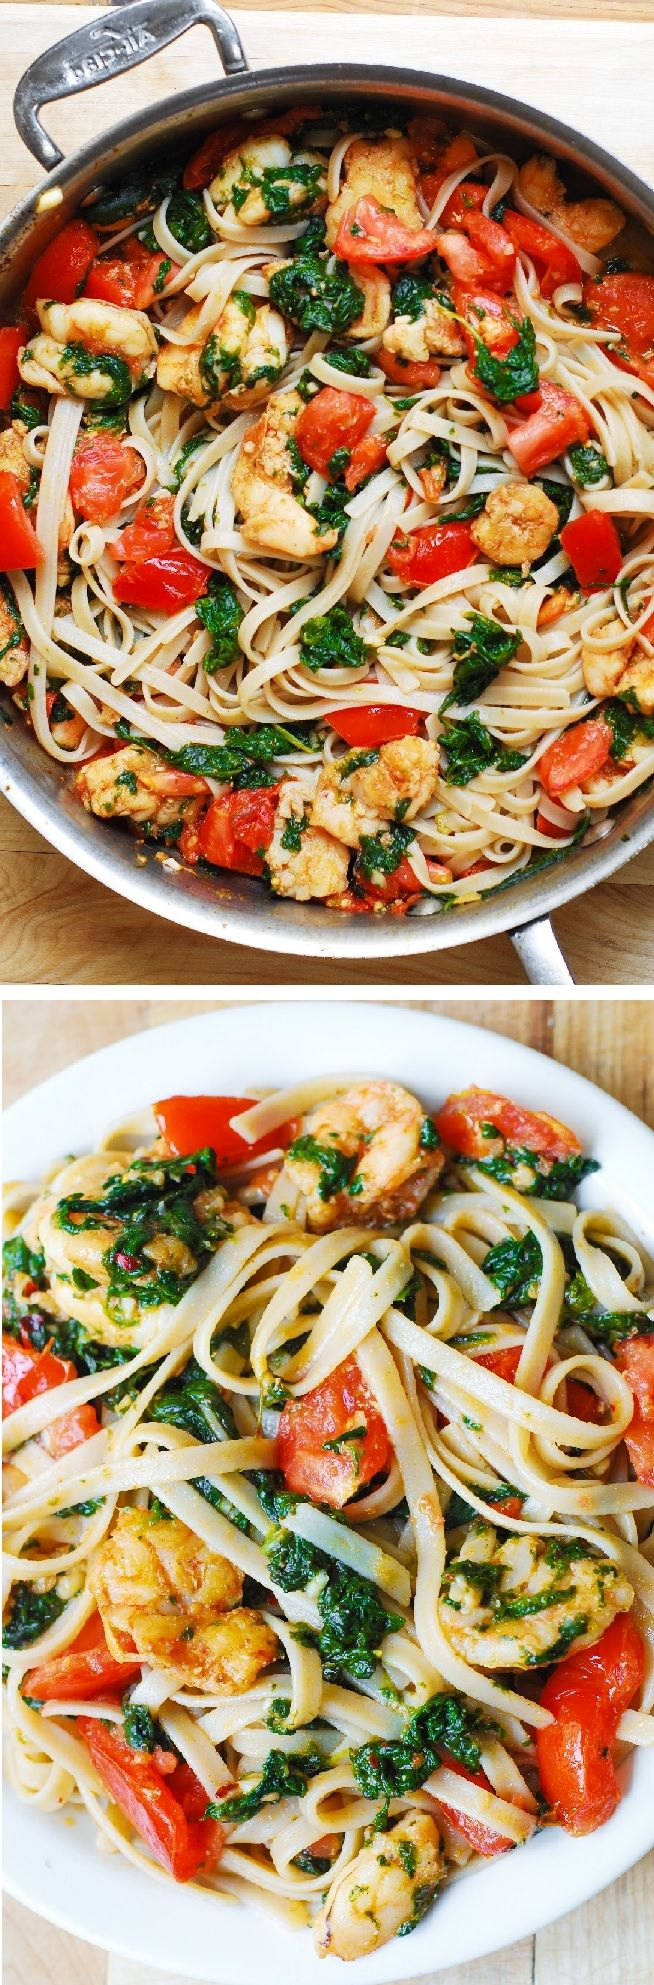 Shrimp  fresh tomatoes  and spinach with fettuccine pasta in garlic butter sauce